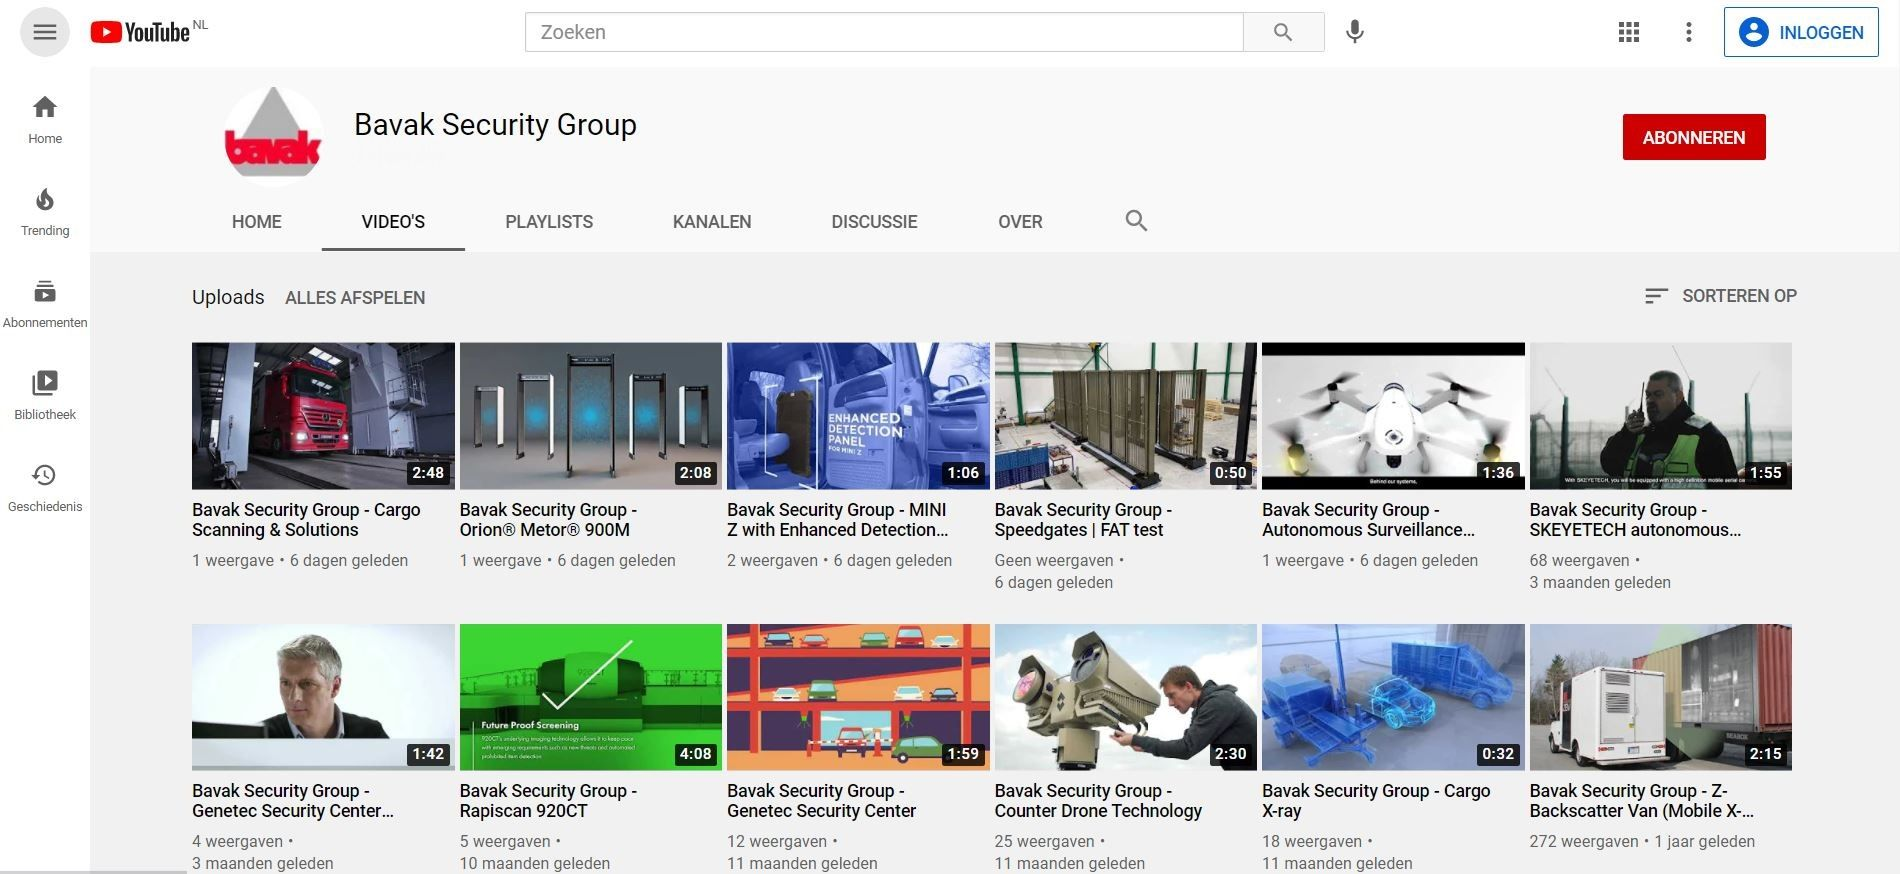 Bavak Security Group on YouTube